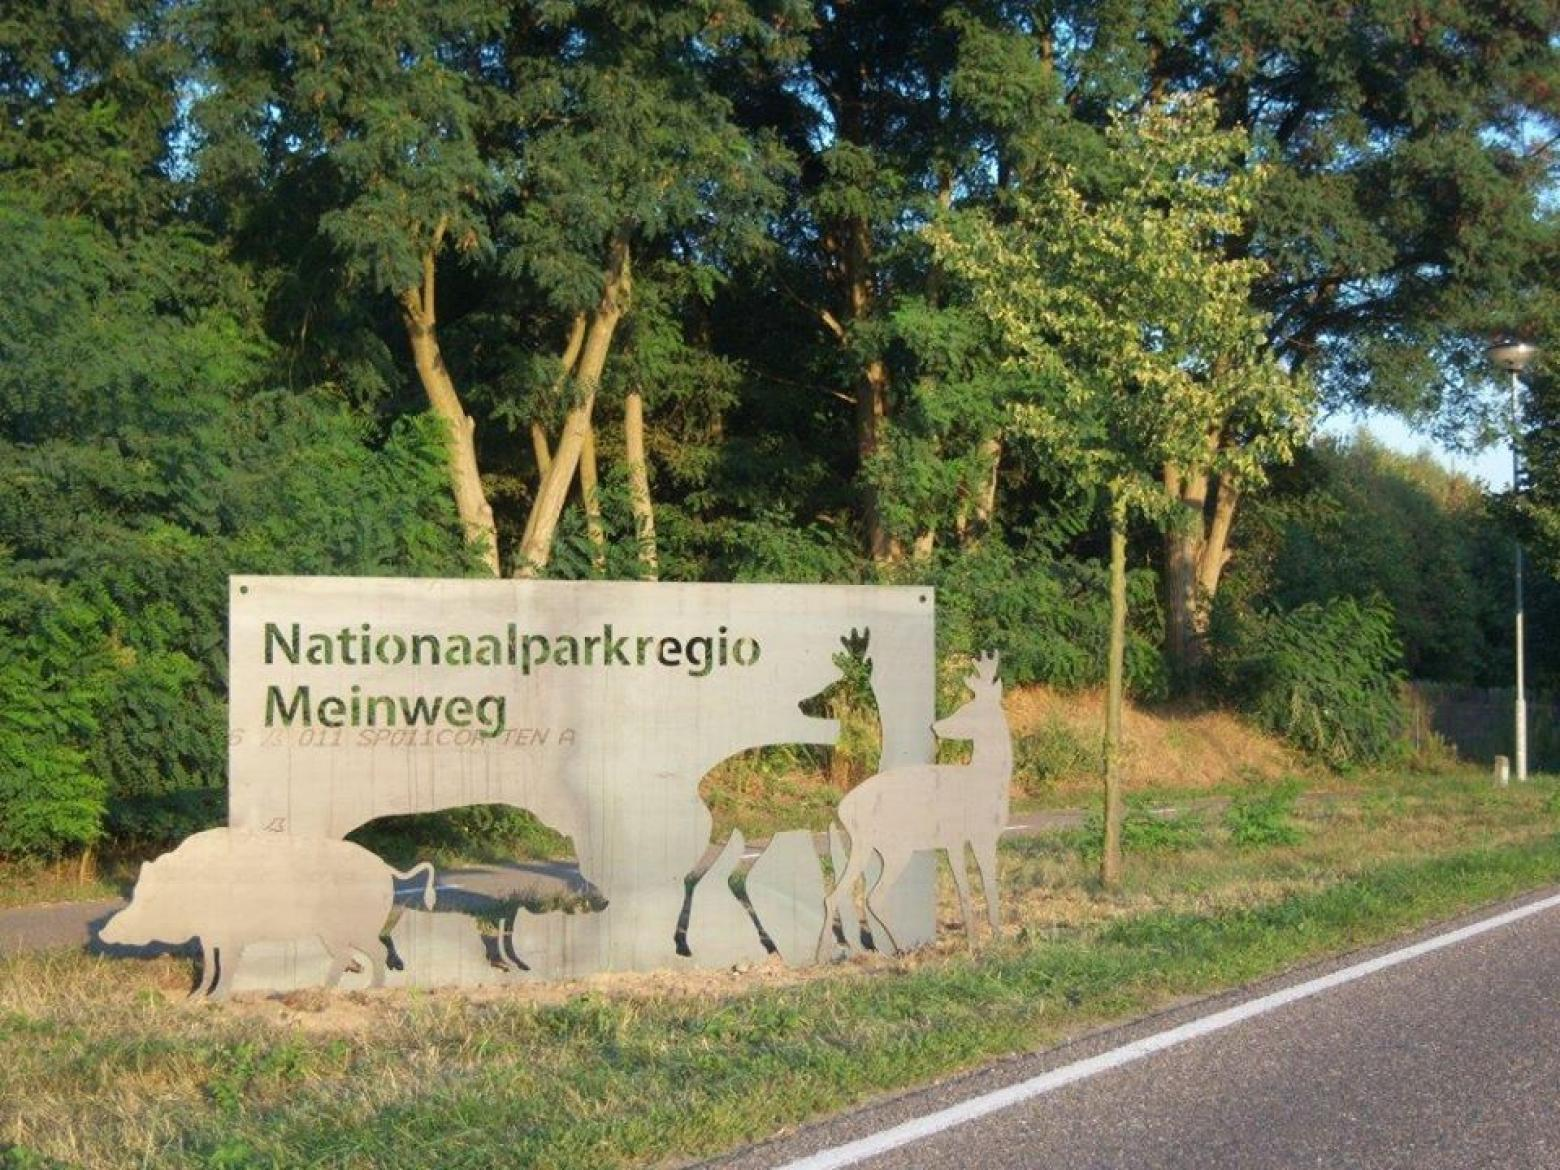 One of the new signs at the entrance of the National Park Region